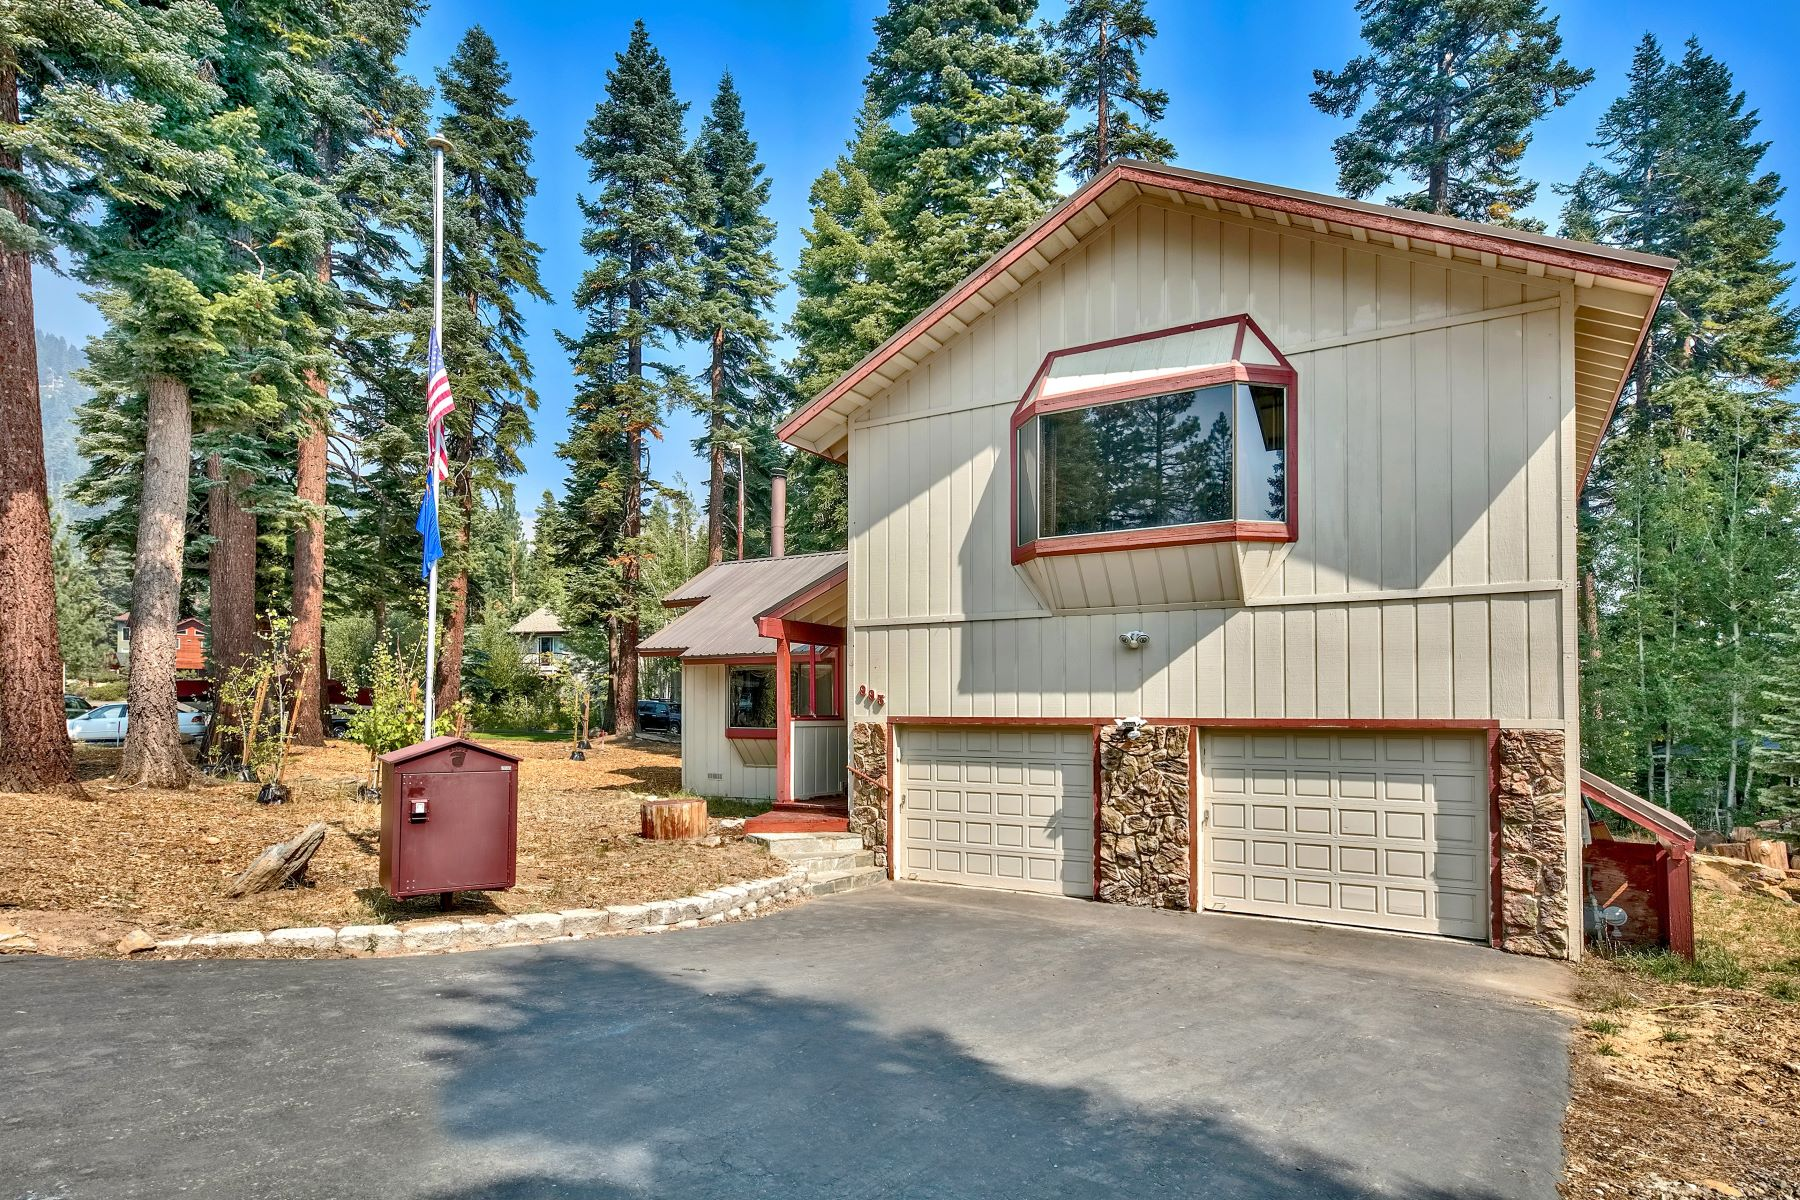 Single Family Homes for Active at Peaceful Tahoe Home 995 Tyner Way Incline Village, Nevada 89451 United States